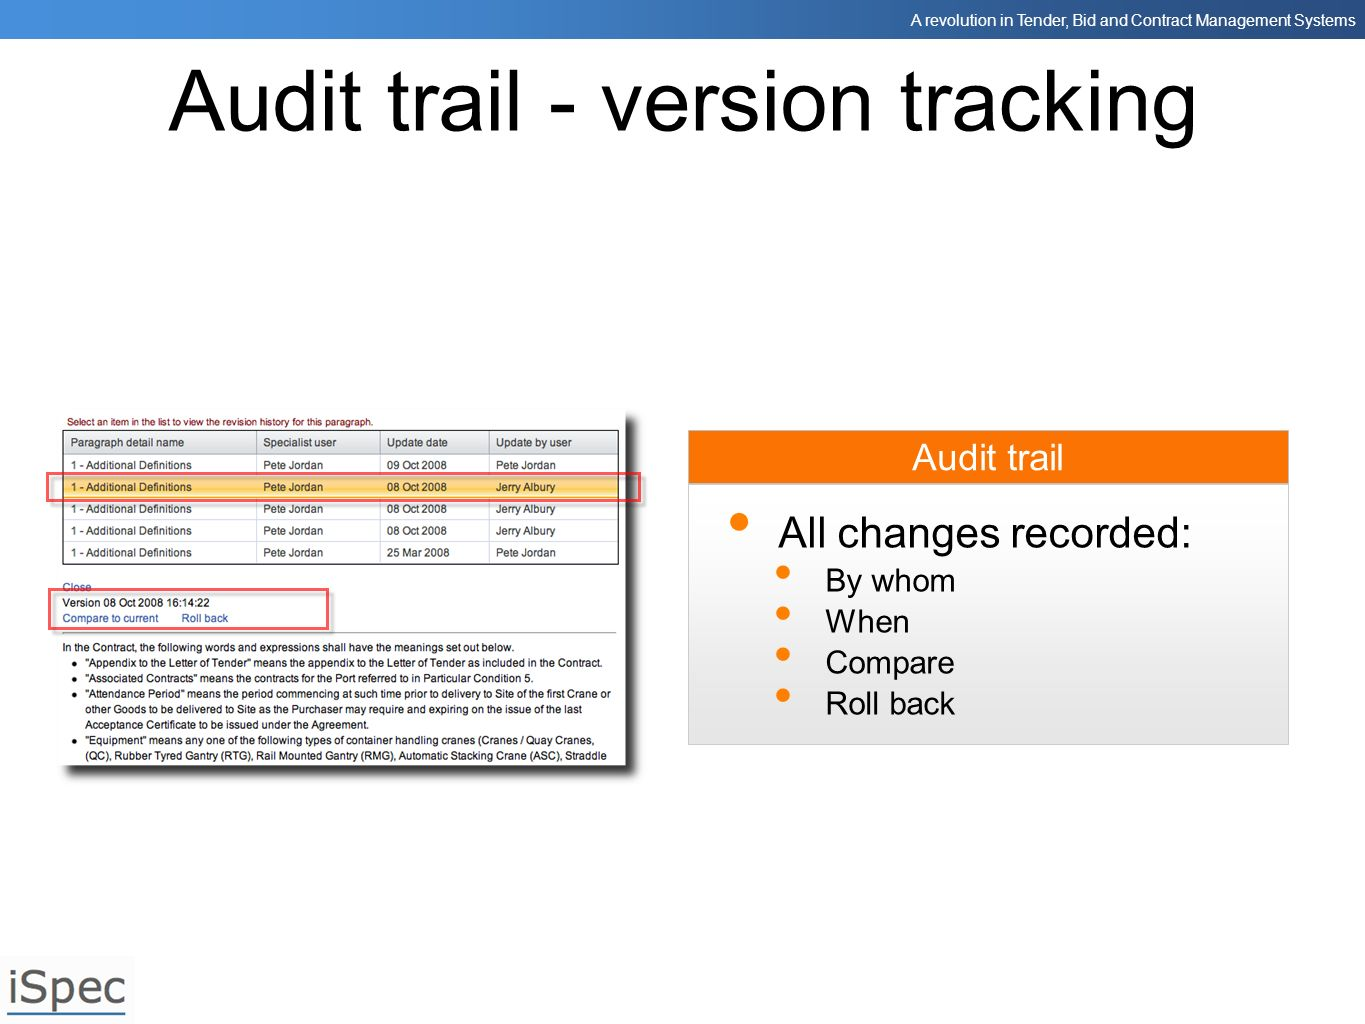 Audit trail - version tracking